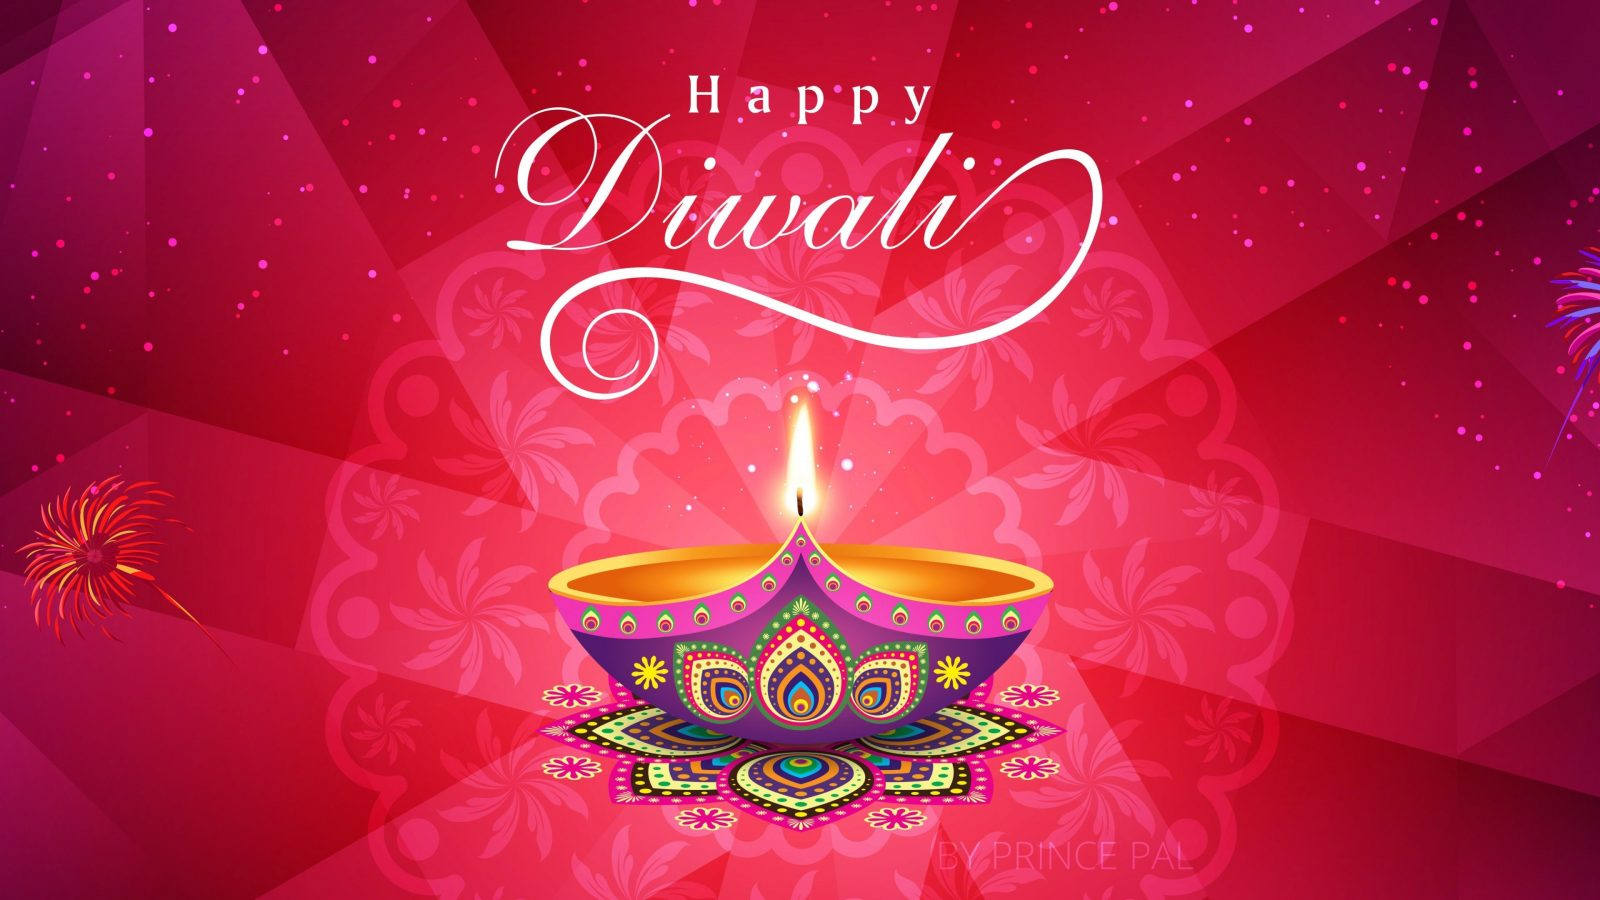 diwali-images-and-photos